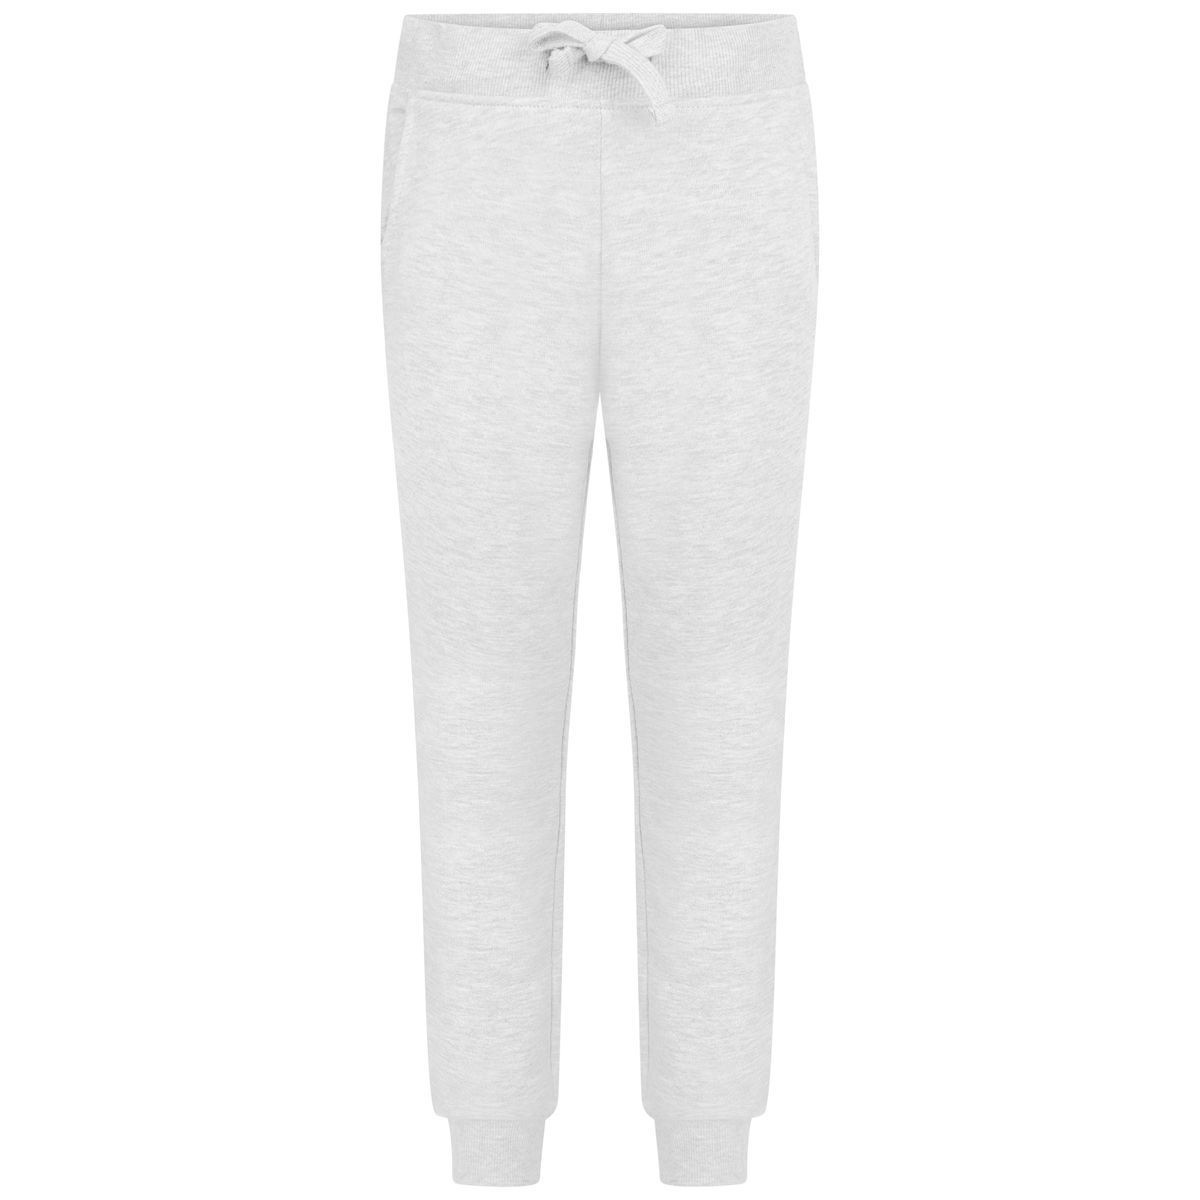 Guess Guess Boys Grey Joggers